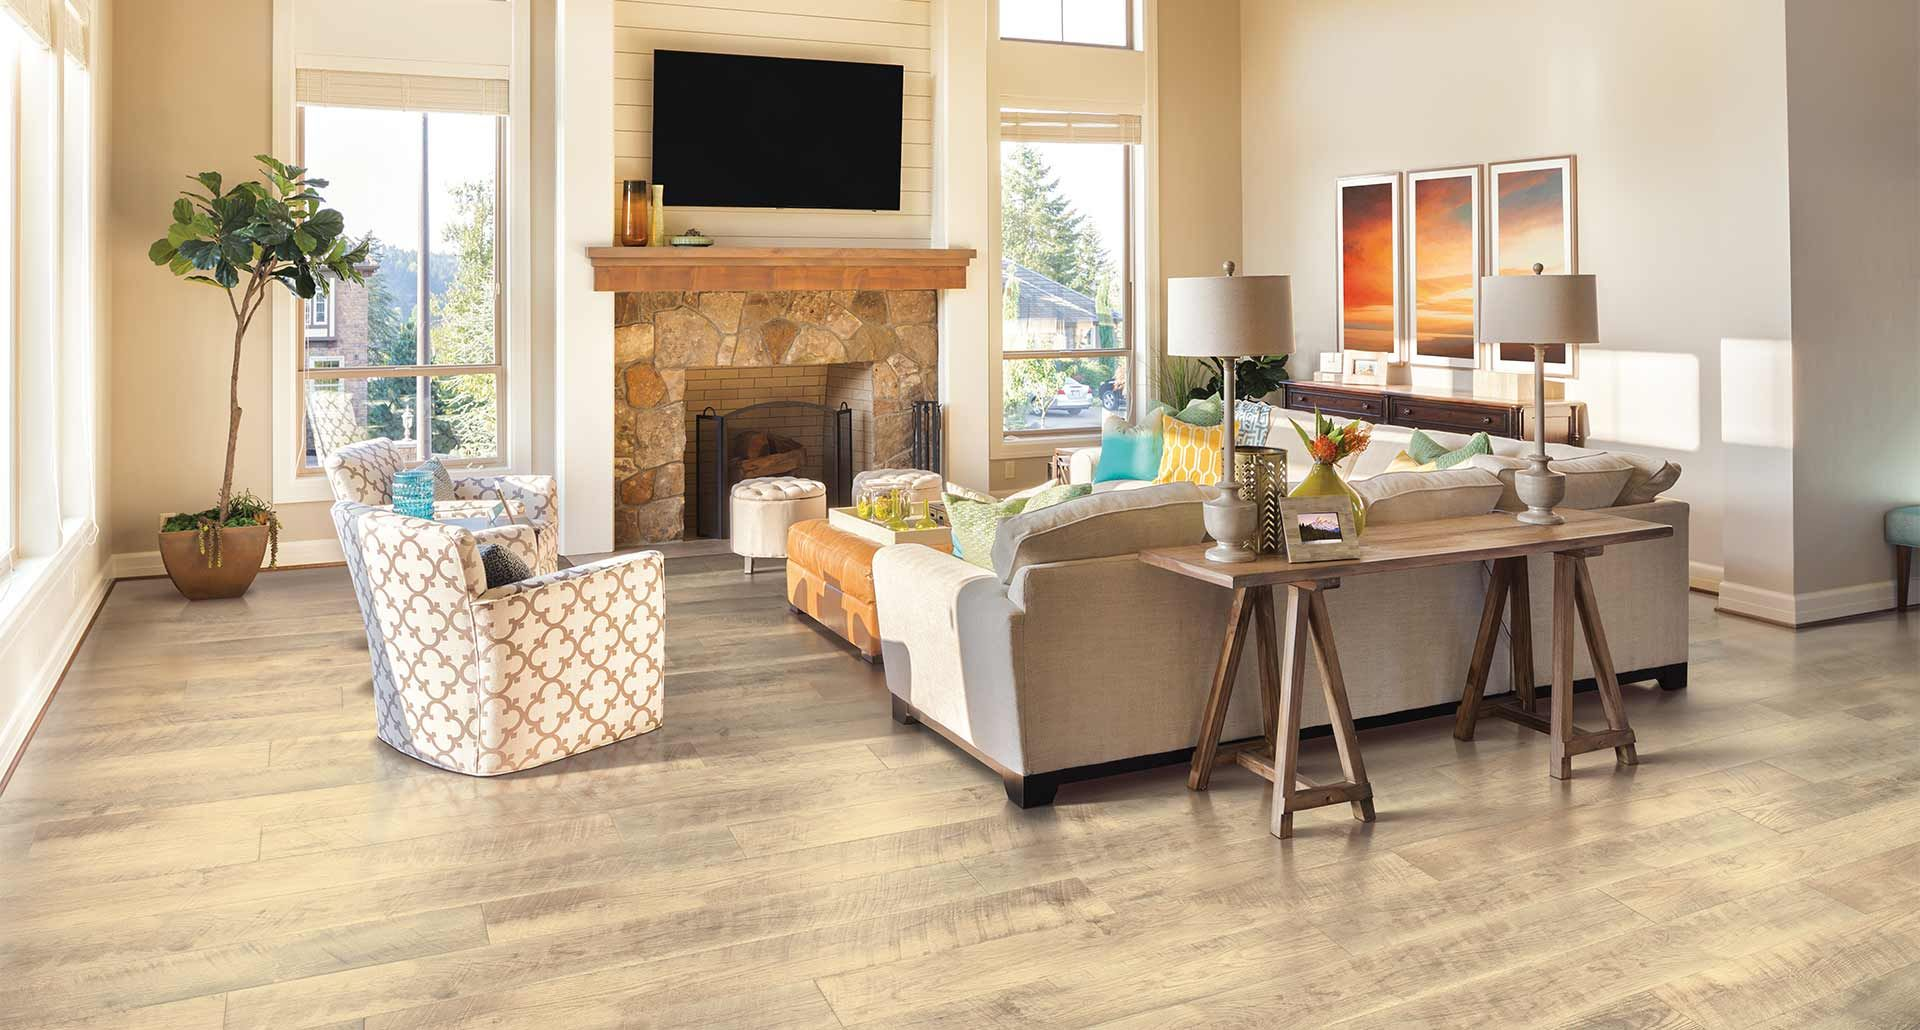 Southport Oak Natural Laminate Floor Beige Wood Finish 10mm 1 Strip Plank Flooring Easy To Install And Covered By Pergo S Lifetime Warranty